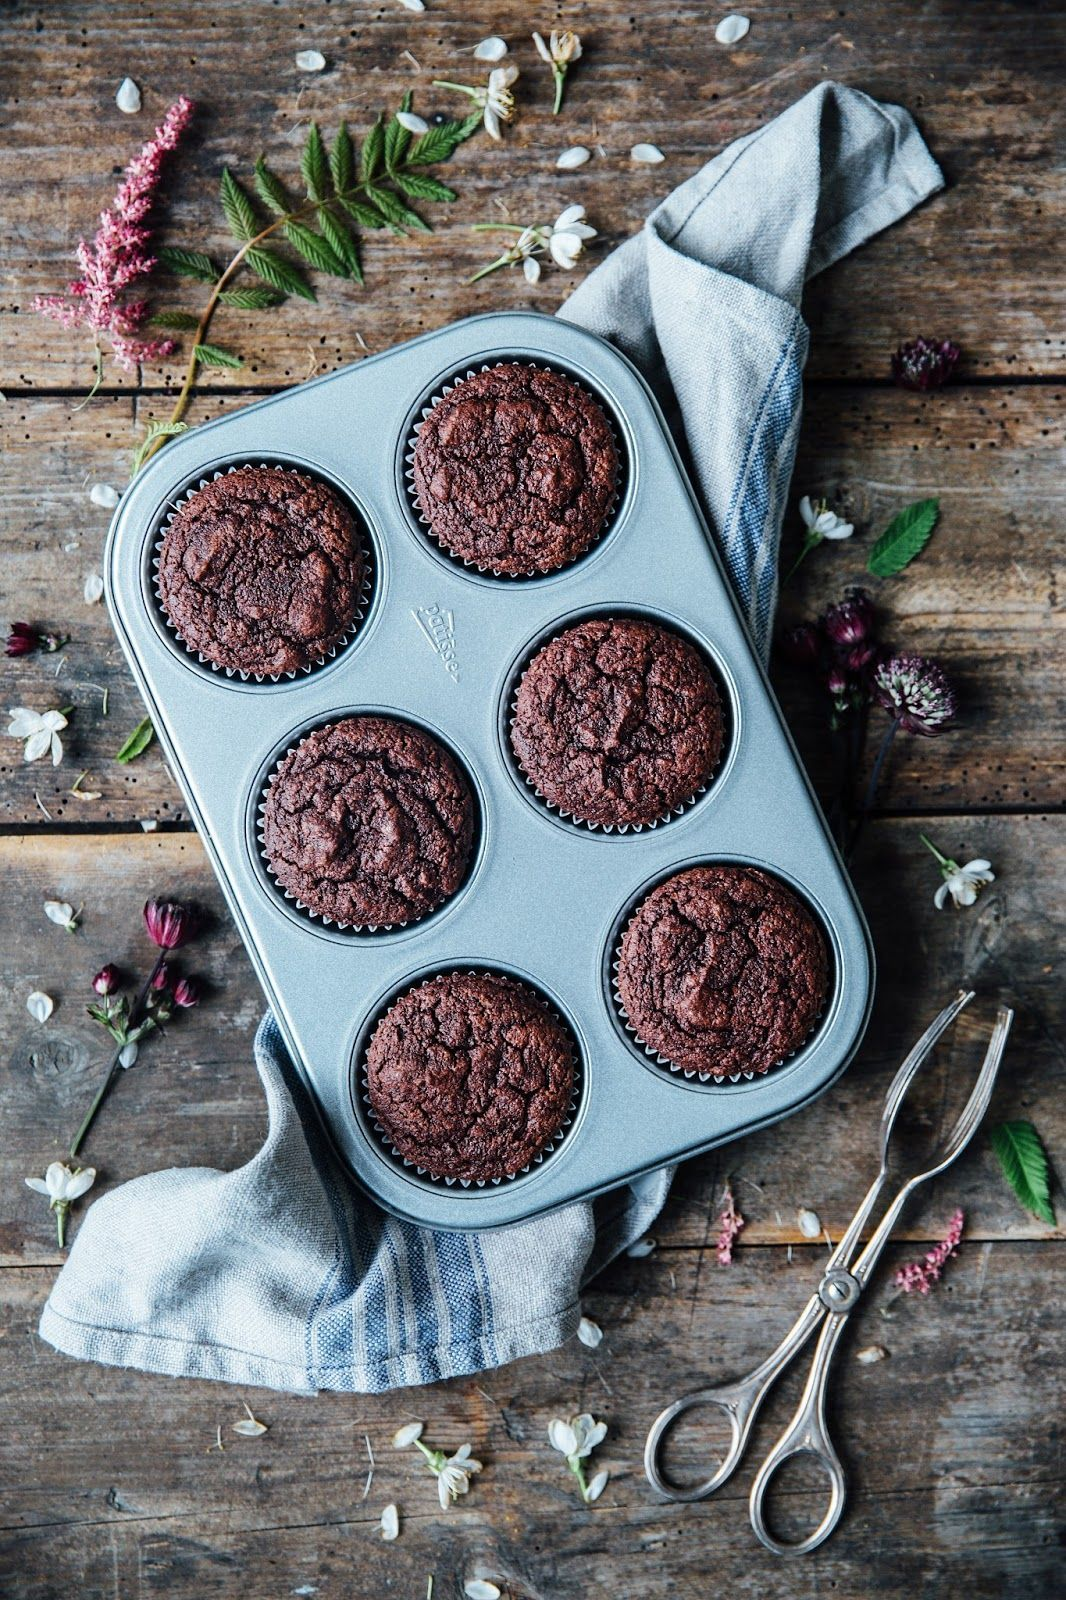 Chocolate Beetroot Cupcakes With Cashew Chia Frosting From The Edeka